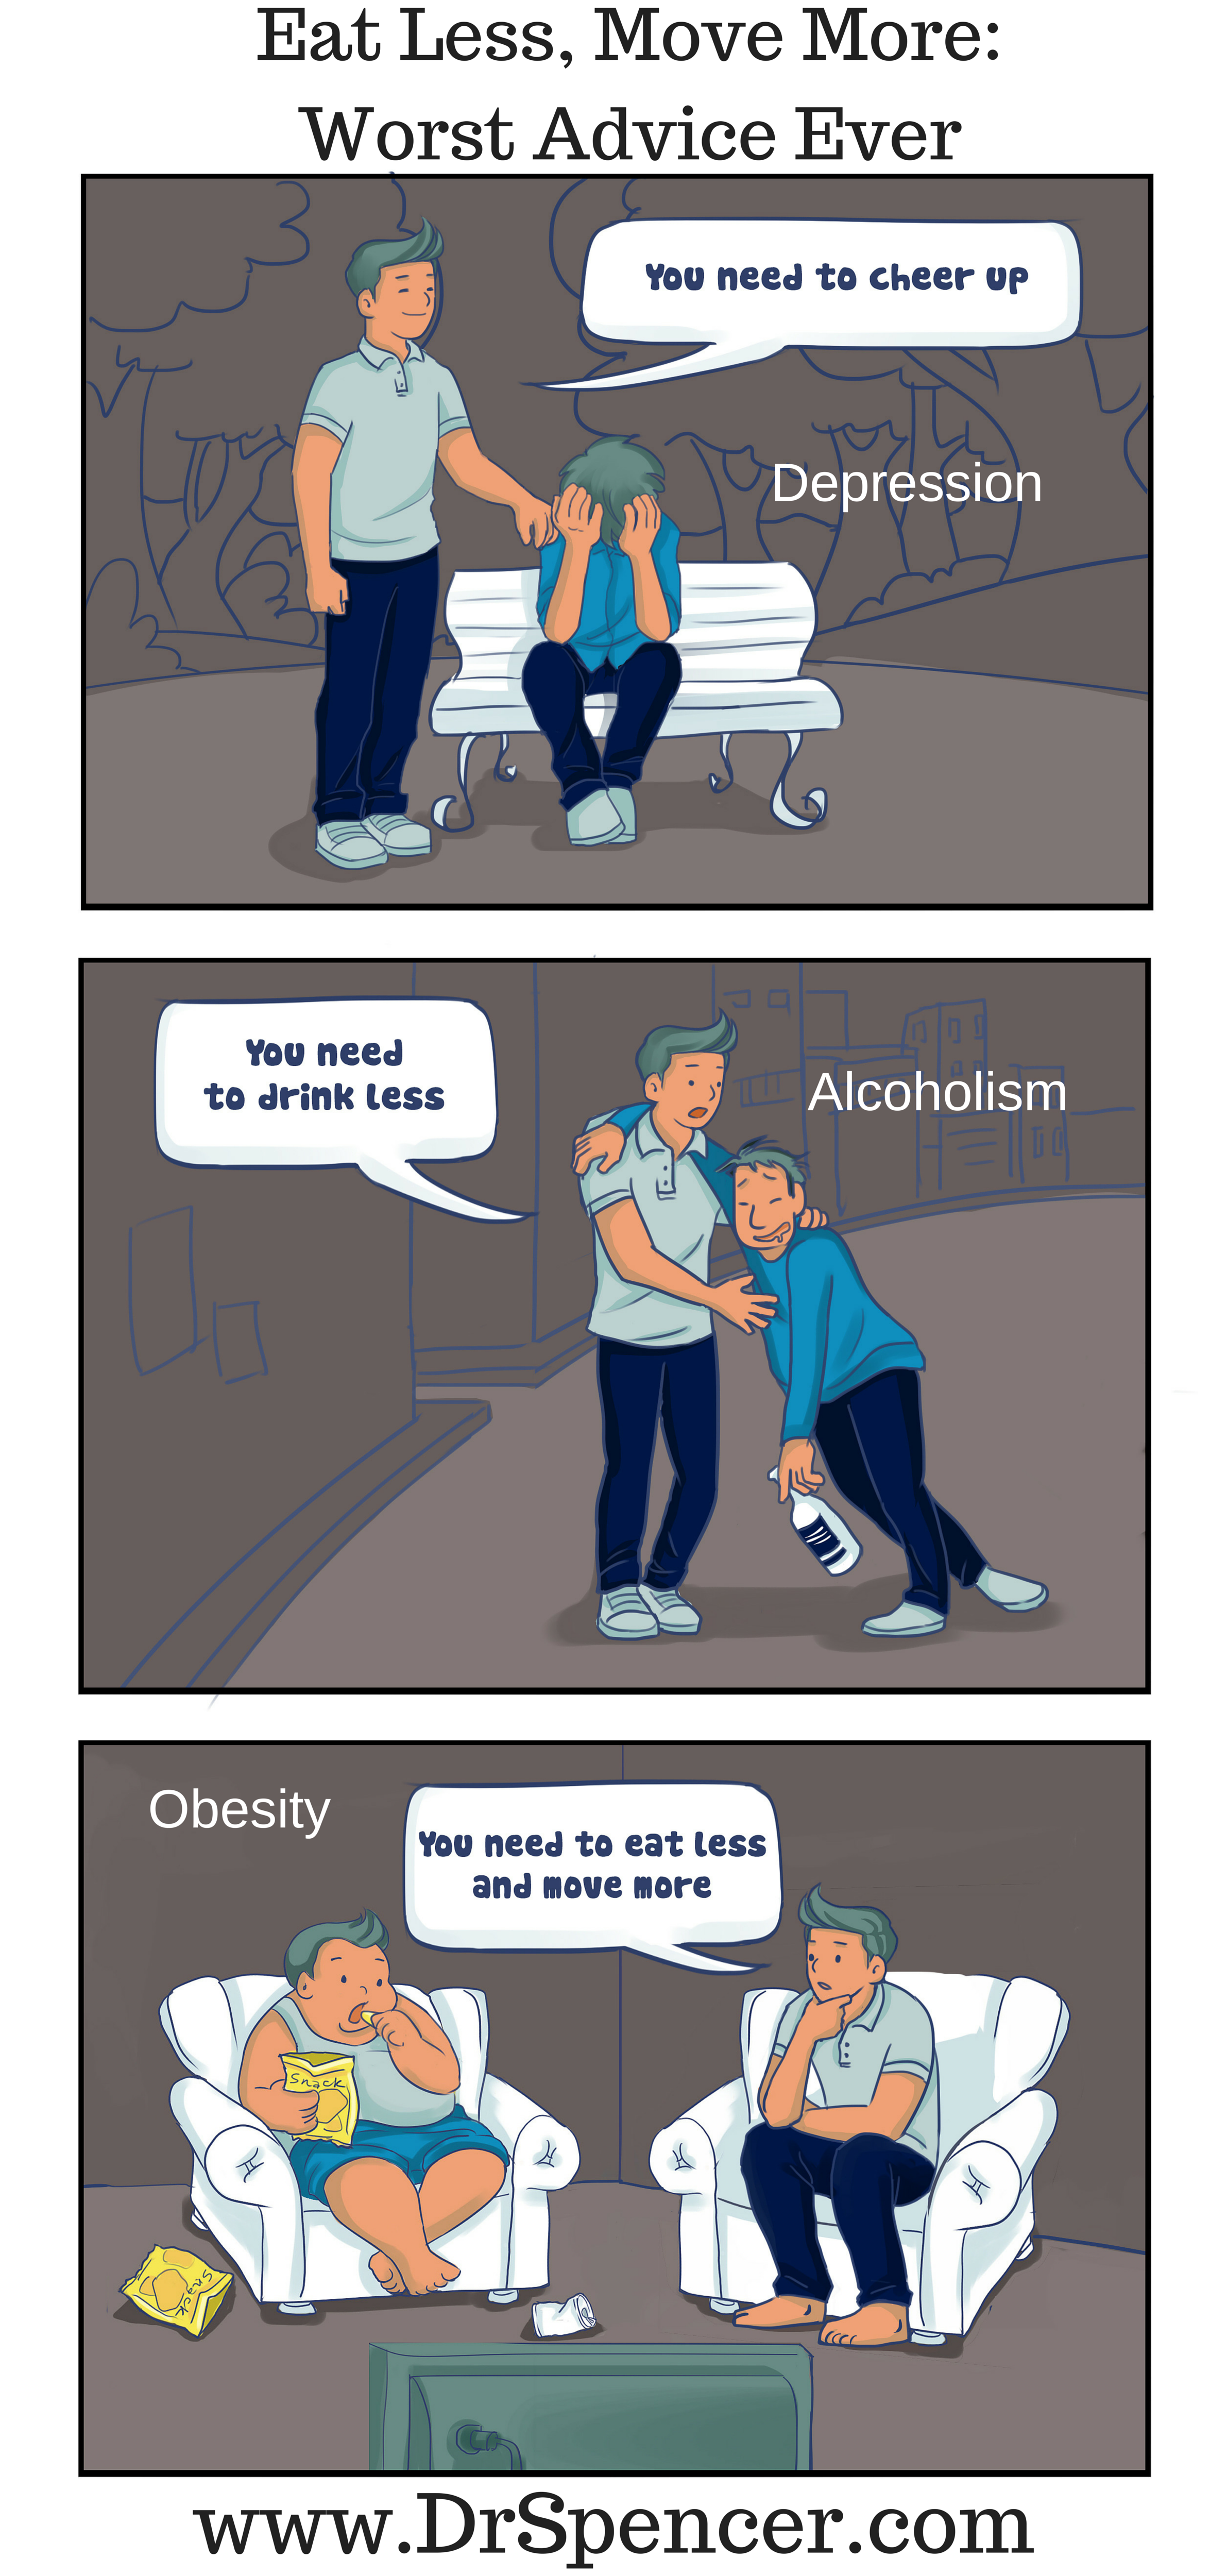 Eat Less, Move More- Worst Advice Ever